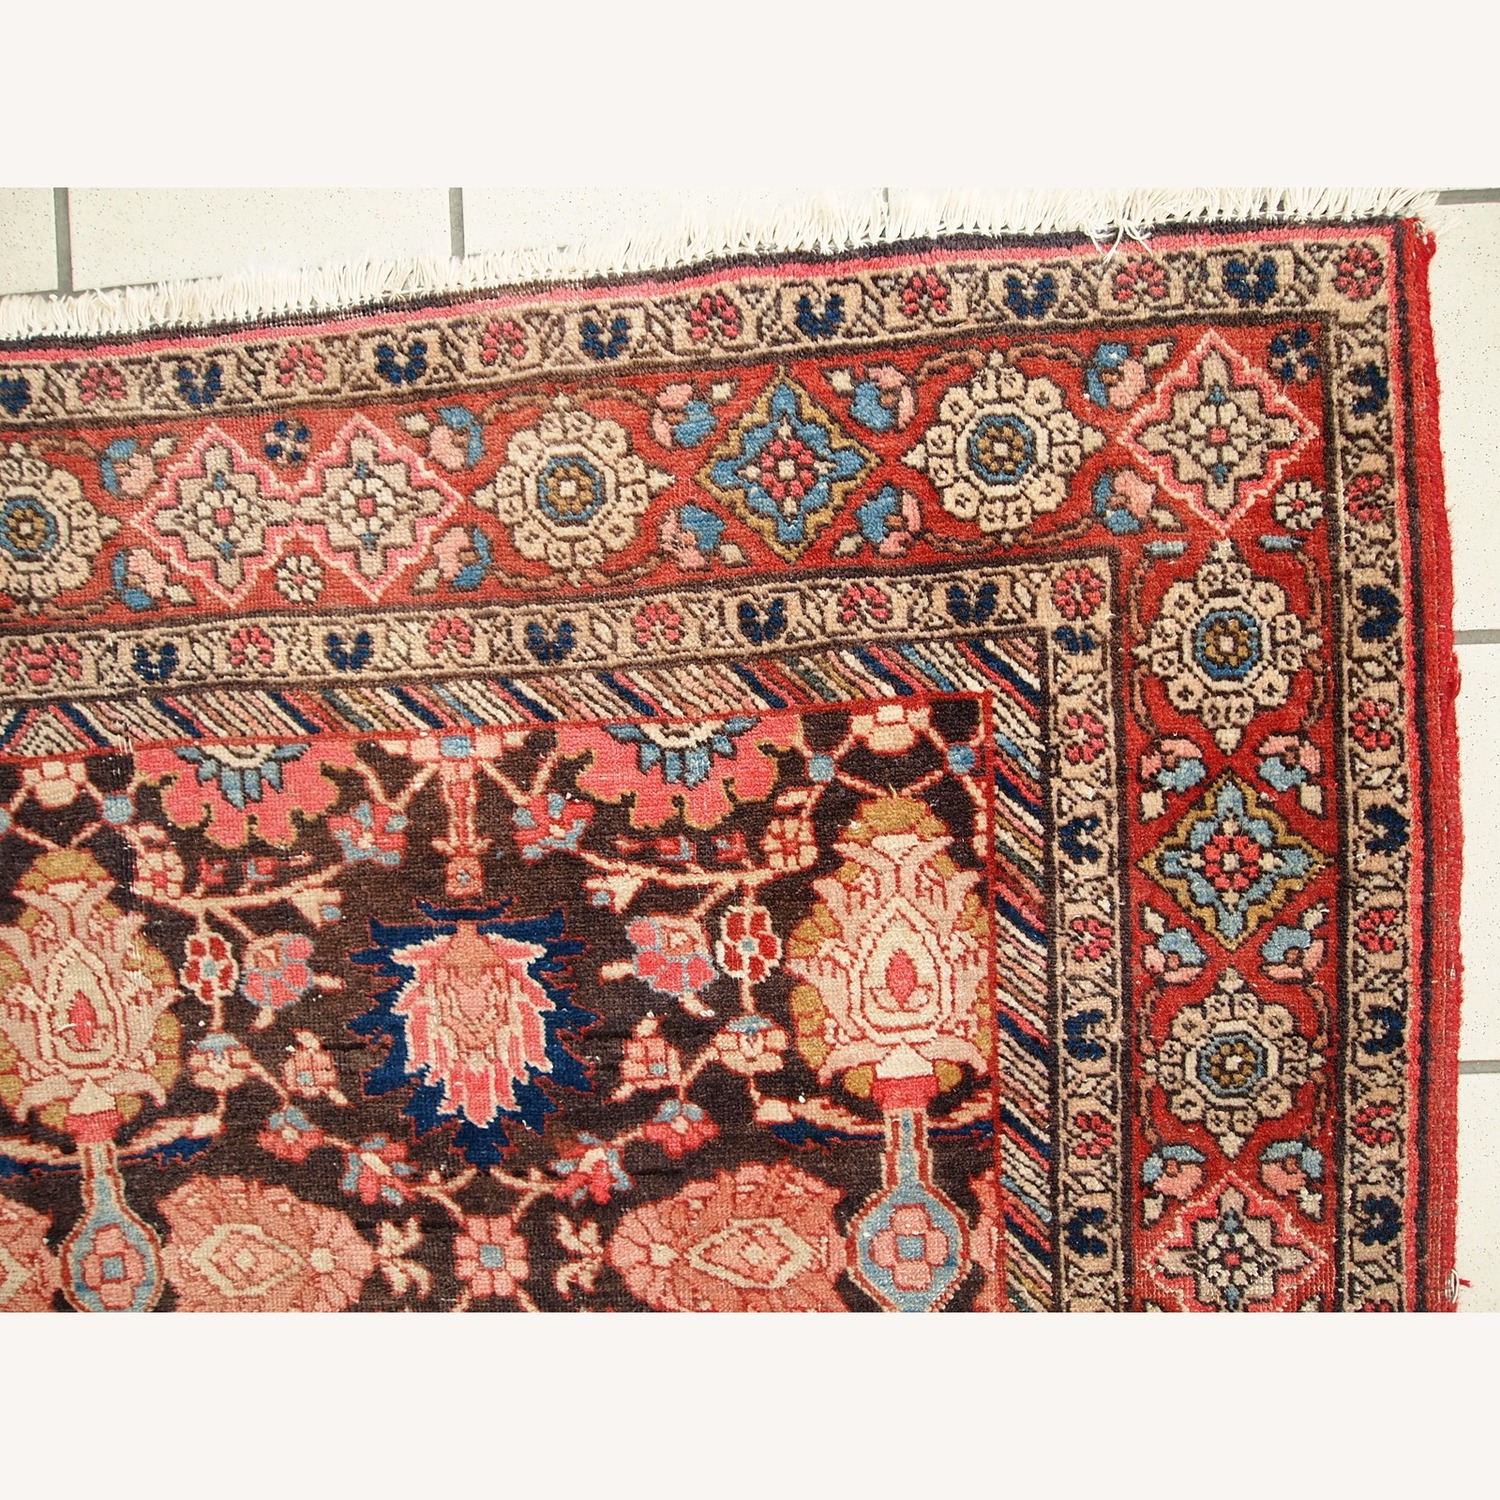 Handmade Antique Persian Bidjar Rug - image-14